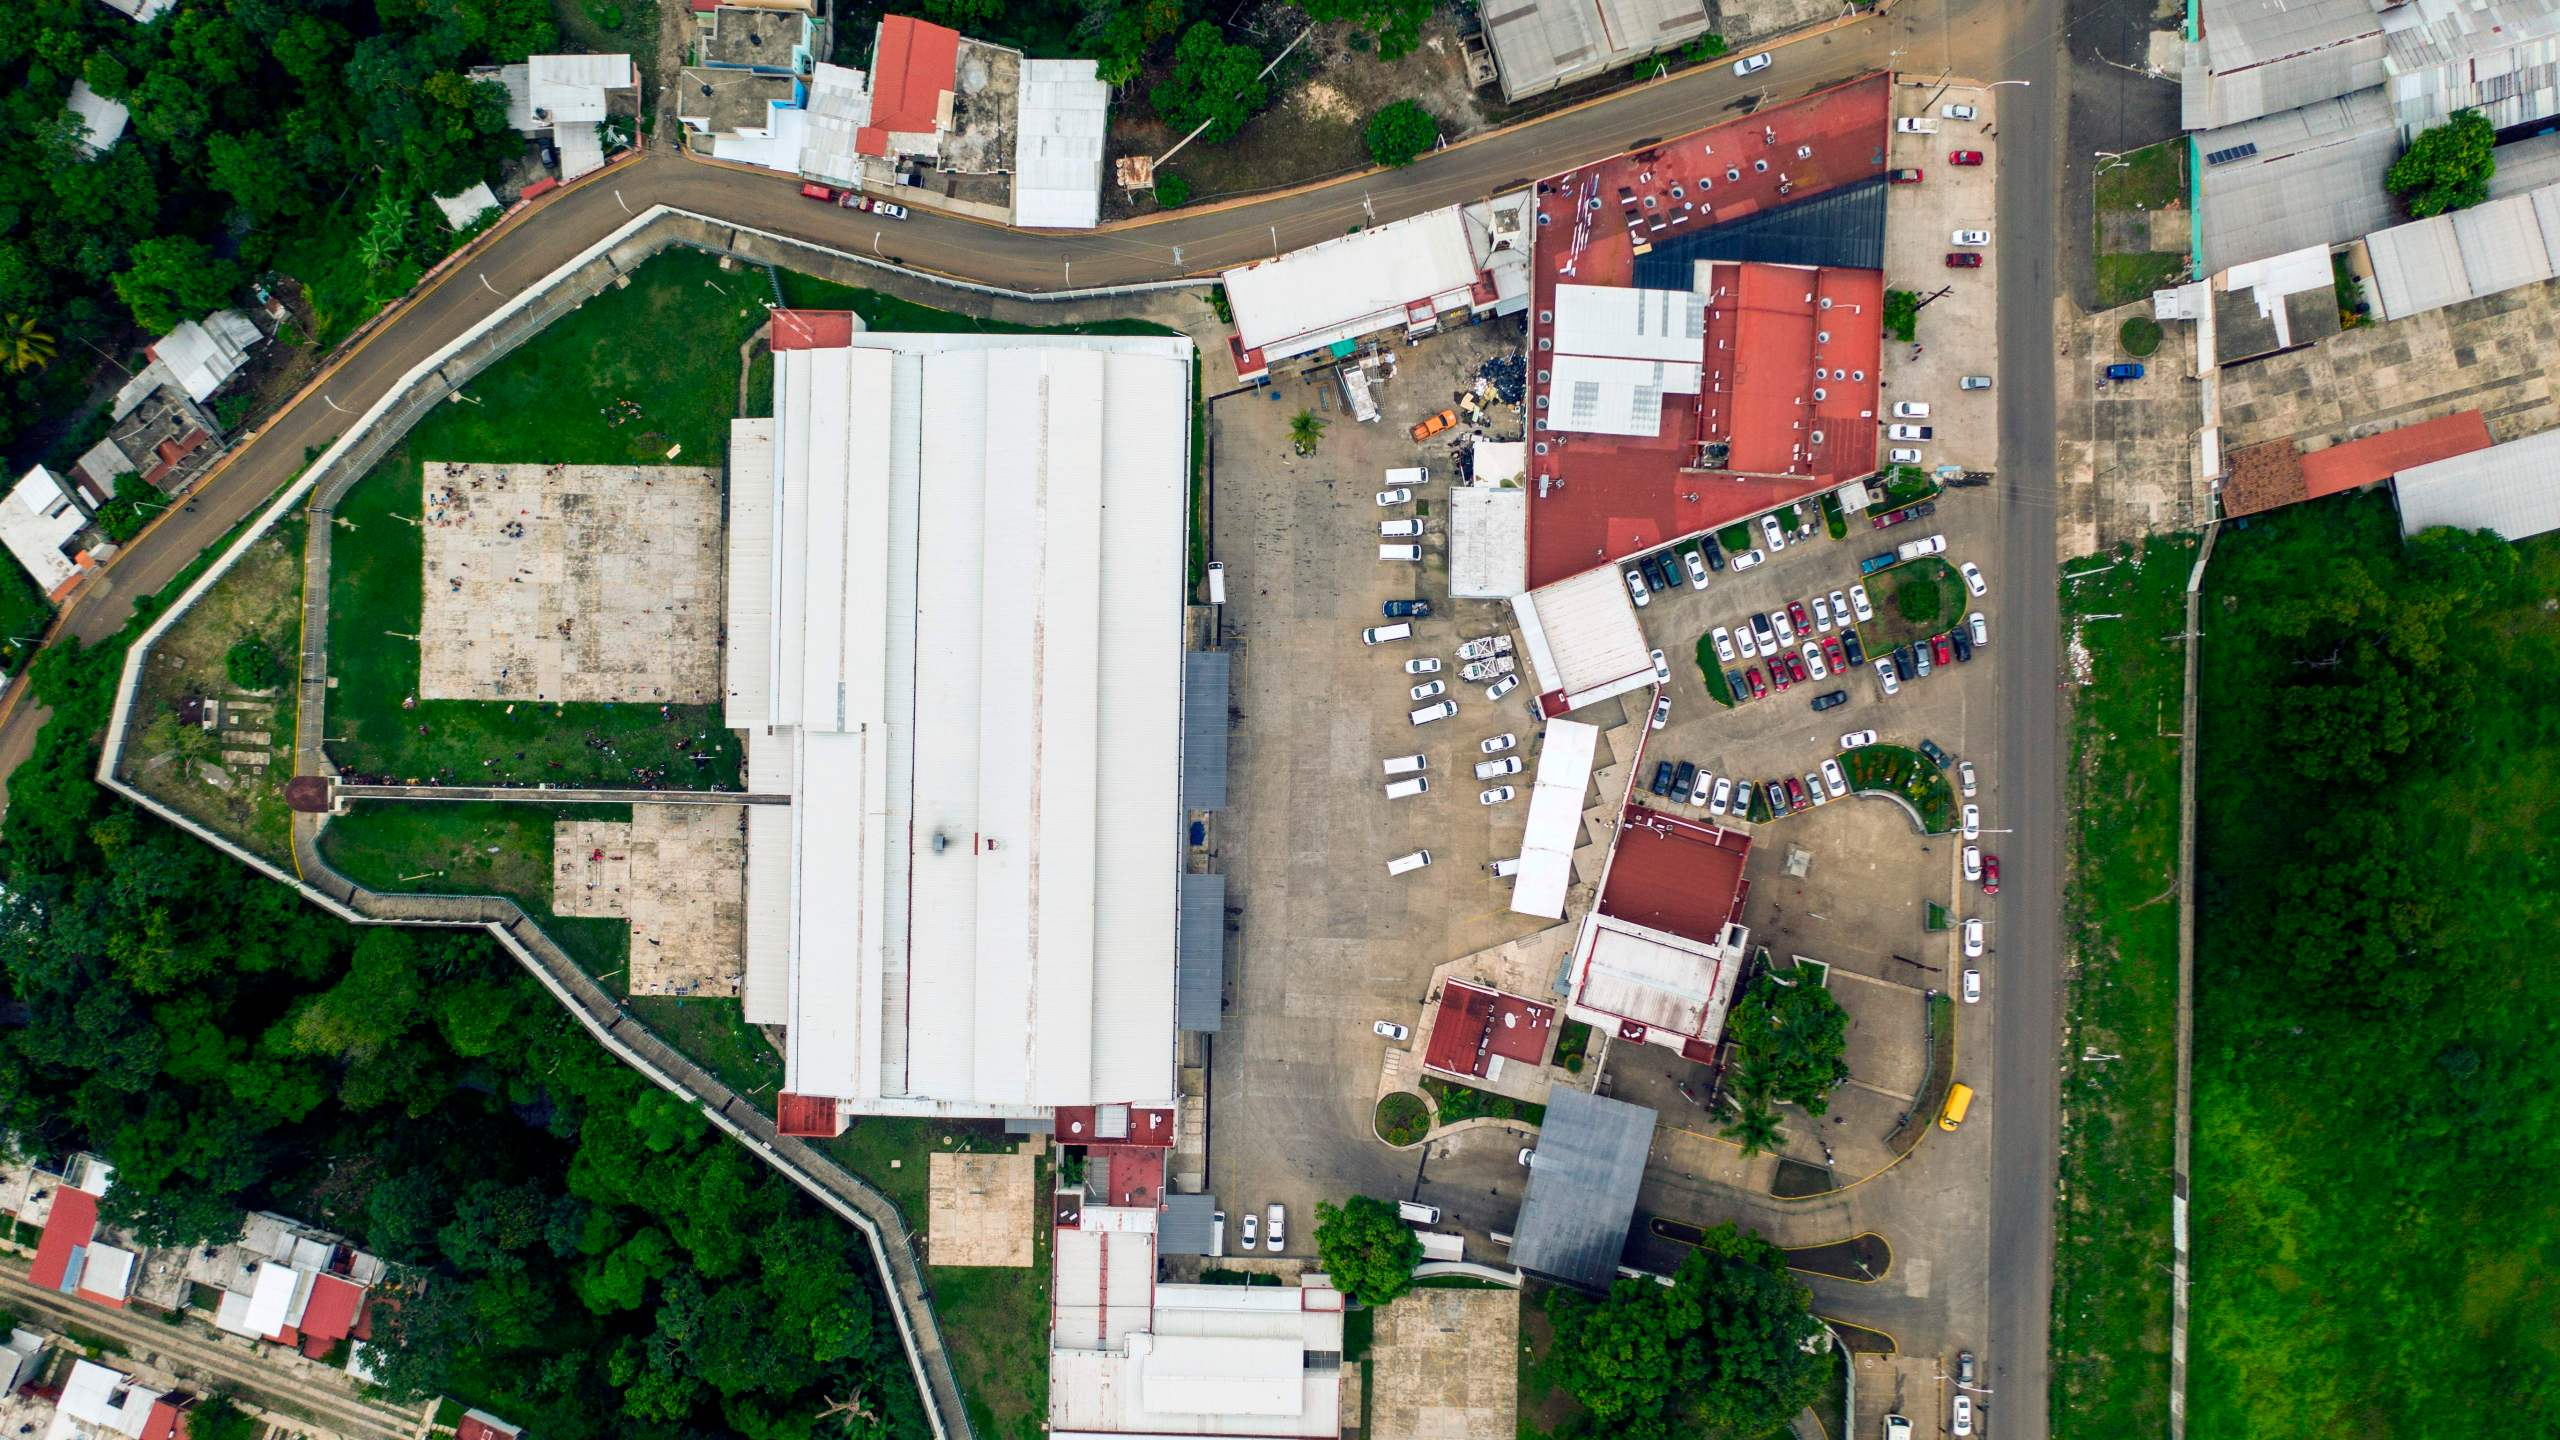 The Siglo XXI immigrant detention centre in Tapachula, Chiapas State, in southern Mexico, is seen from an aerial view on June 6, 2019. (Credit: PEDRO PARDO/AFP/Getty Images)